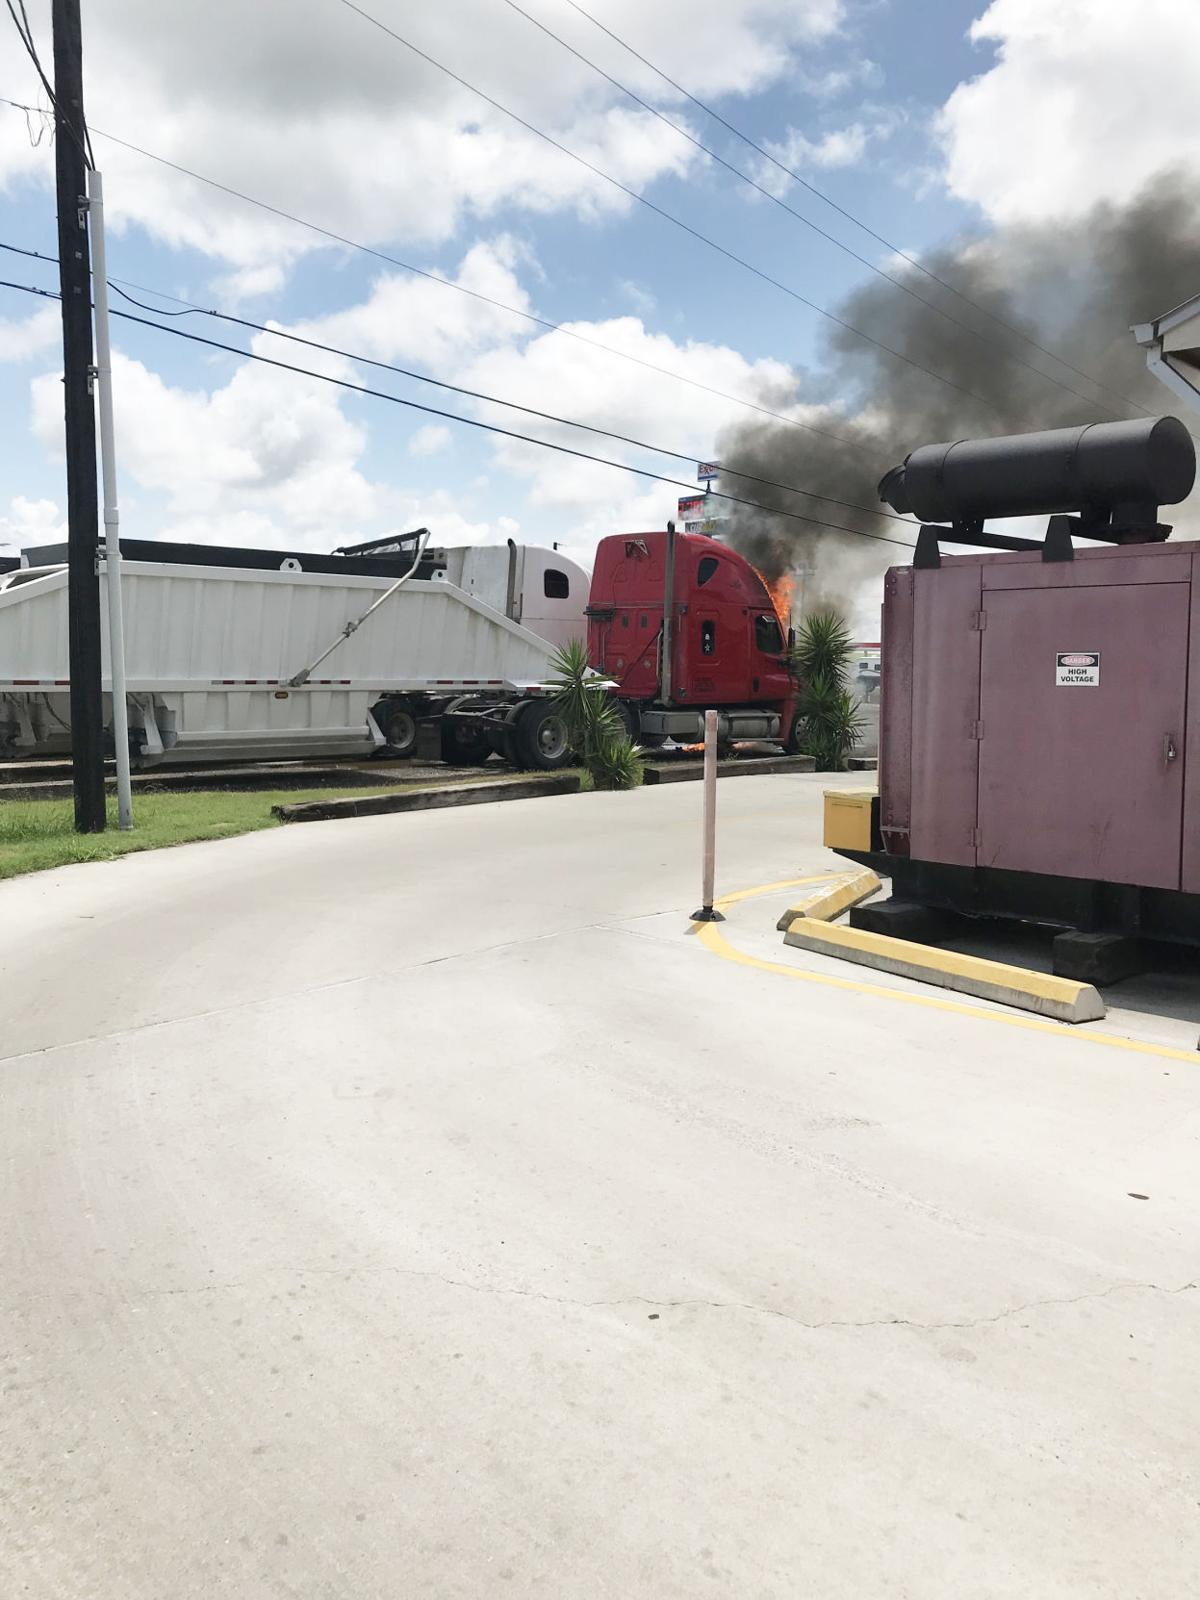 Big rig burn out in Mathis